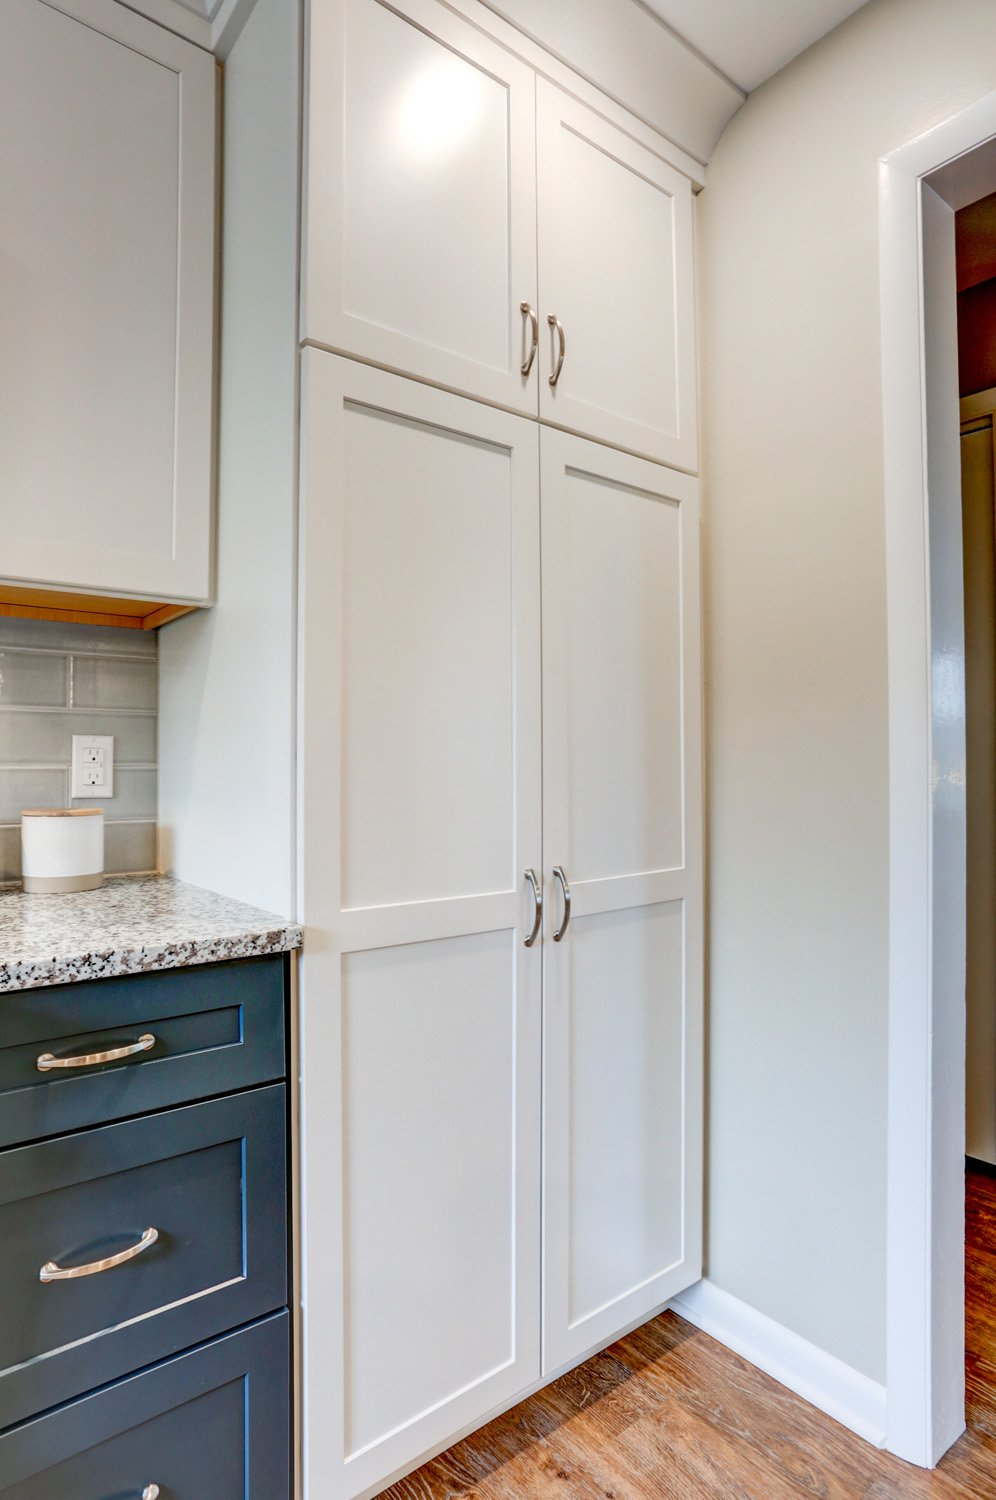 Floor to Ceiling Cabinets in Warwick Township Kitchen Remodel